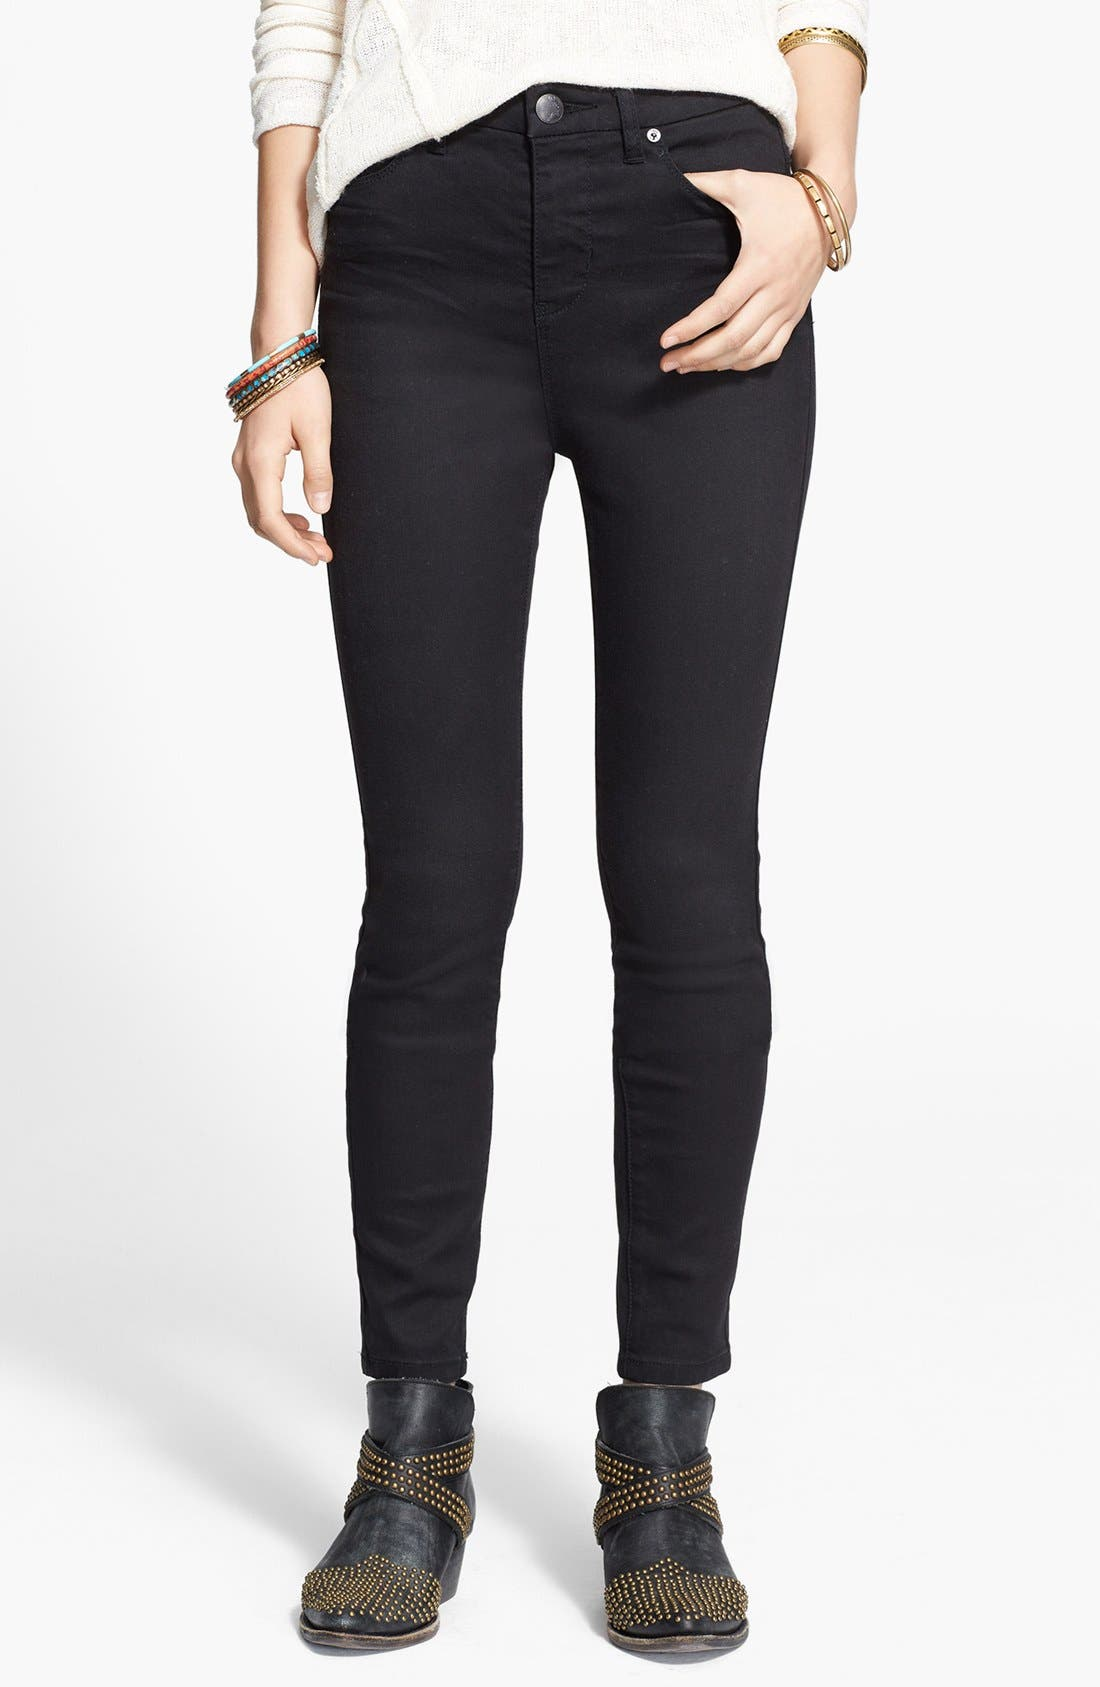 Alternate Image 1 Selected - Free People High Rise Skinny Jeans (Union)